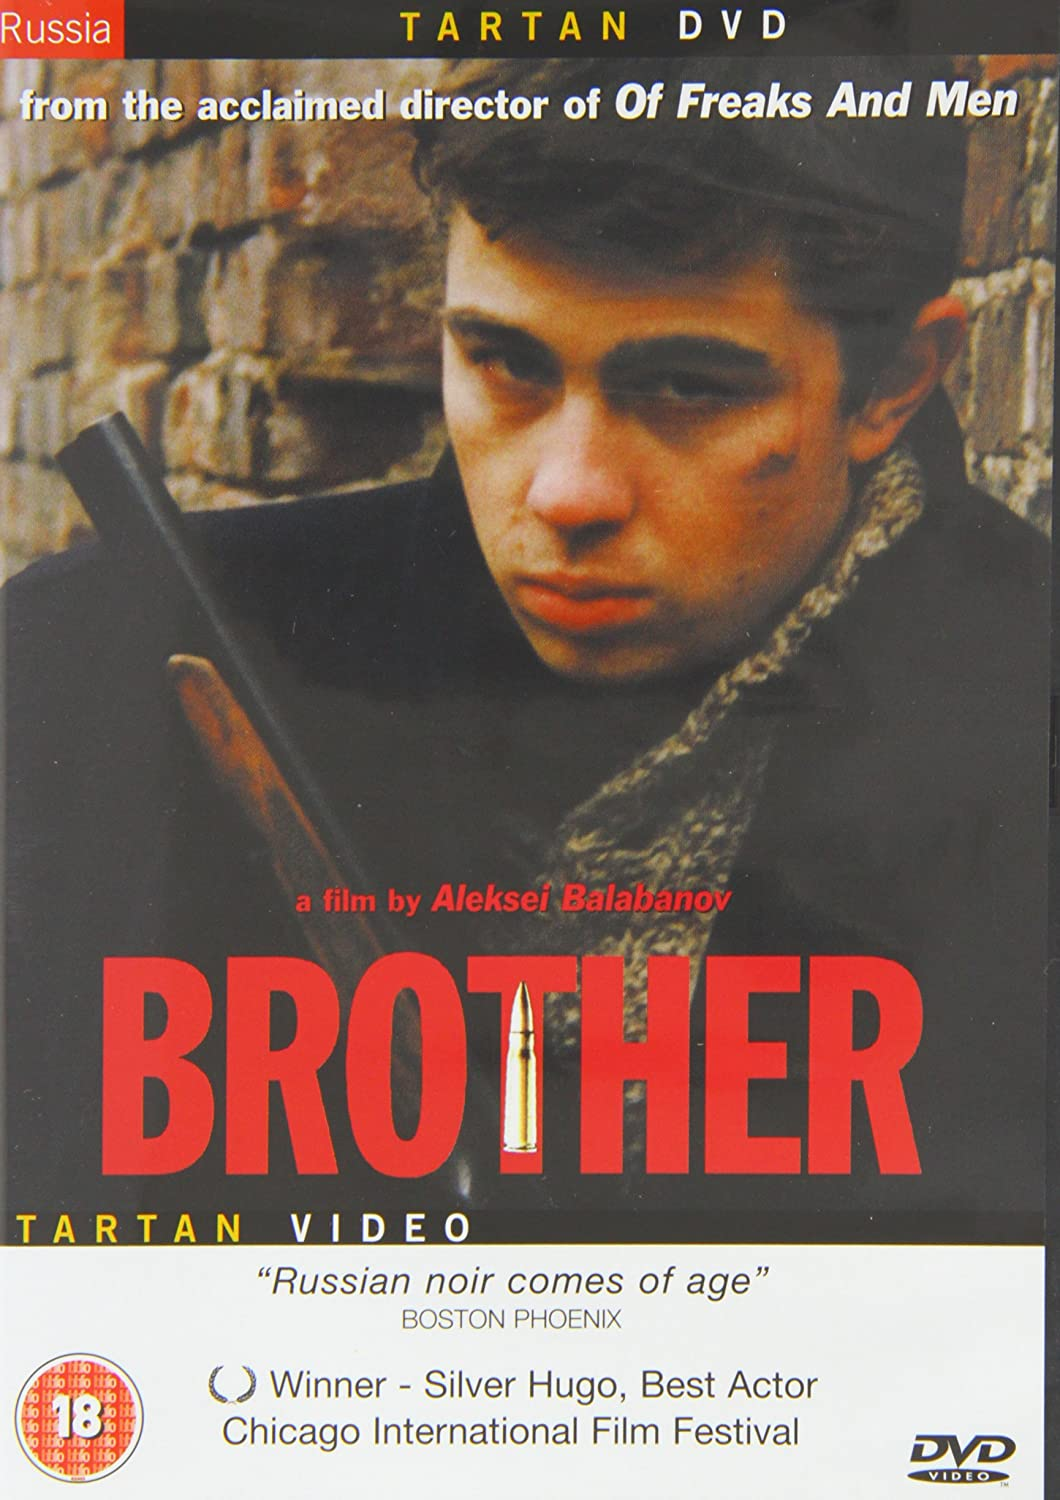 A walk through the filming locations of the film Brother with Sergey Bodrov